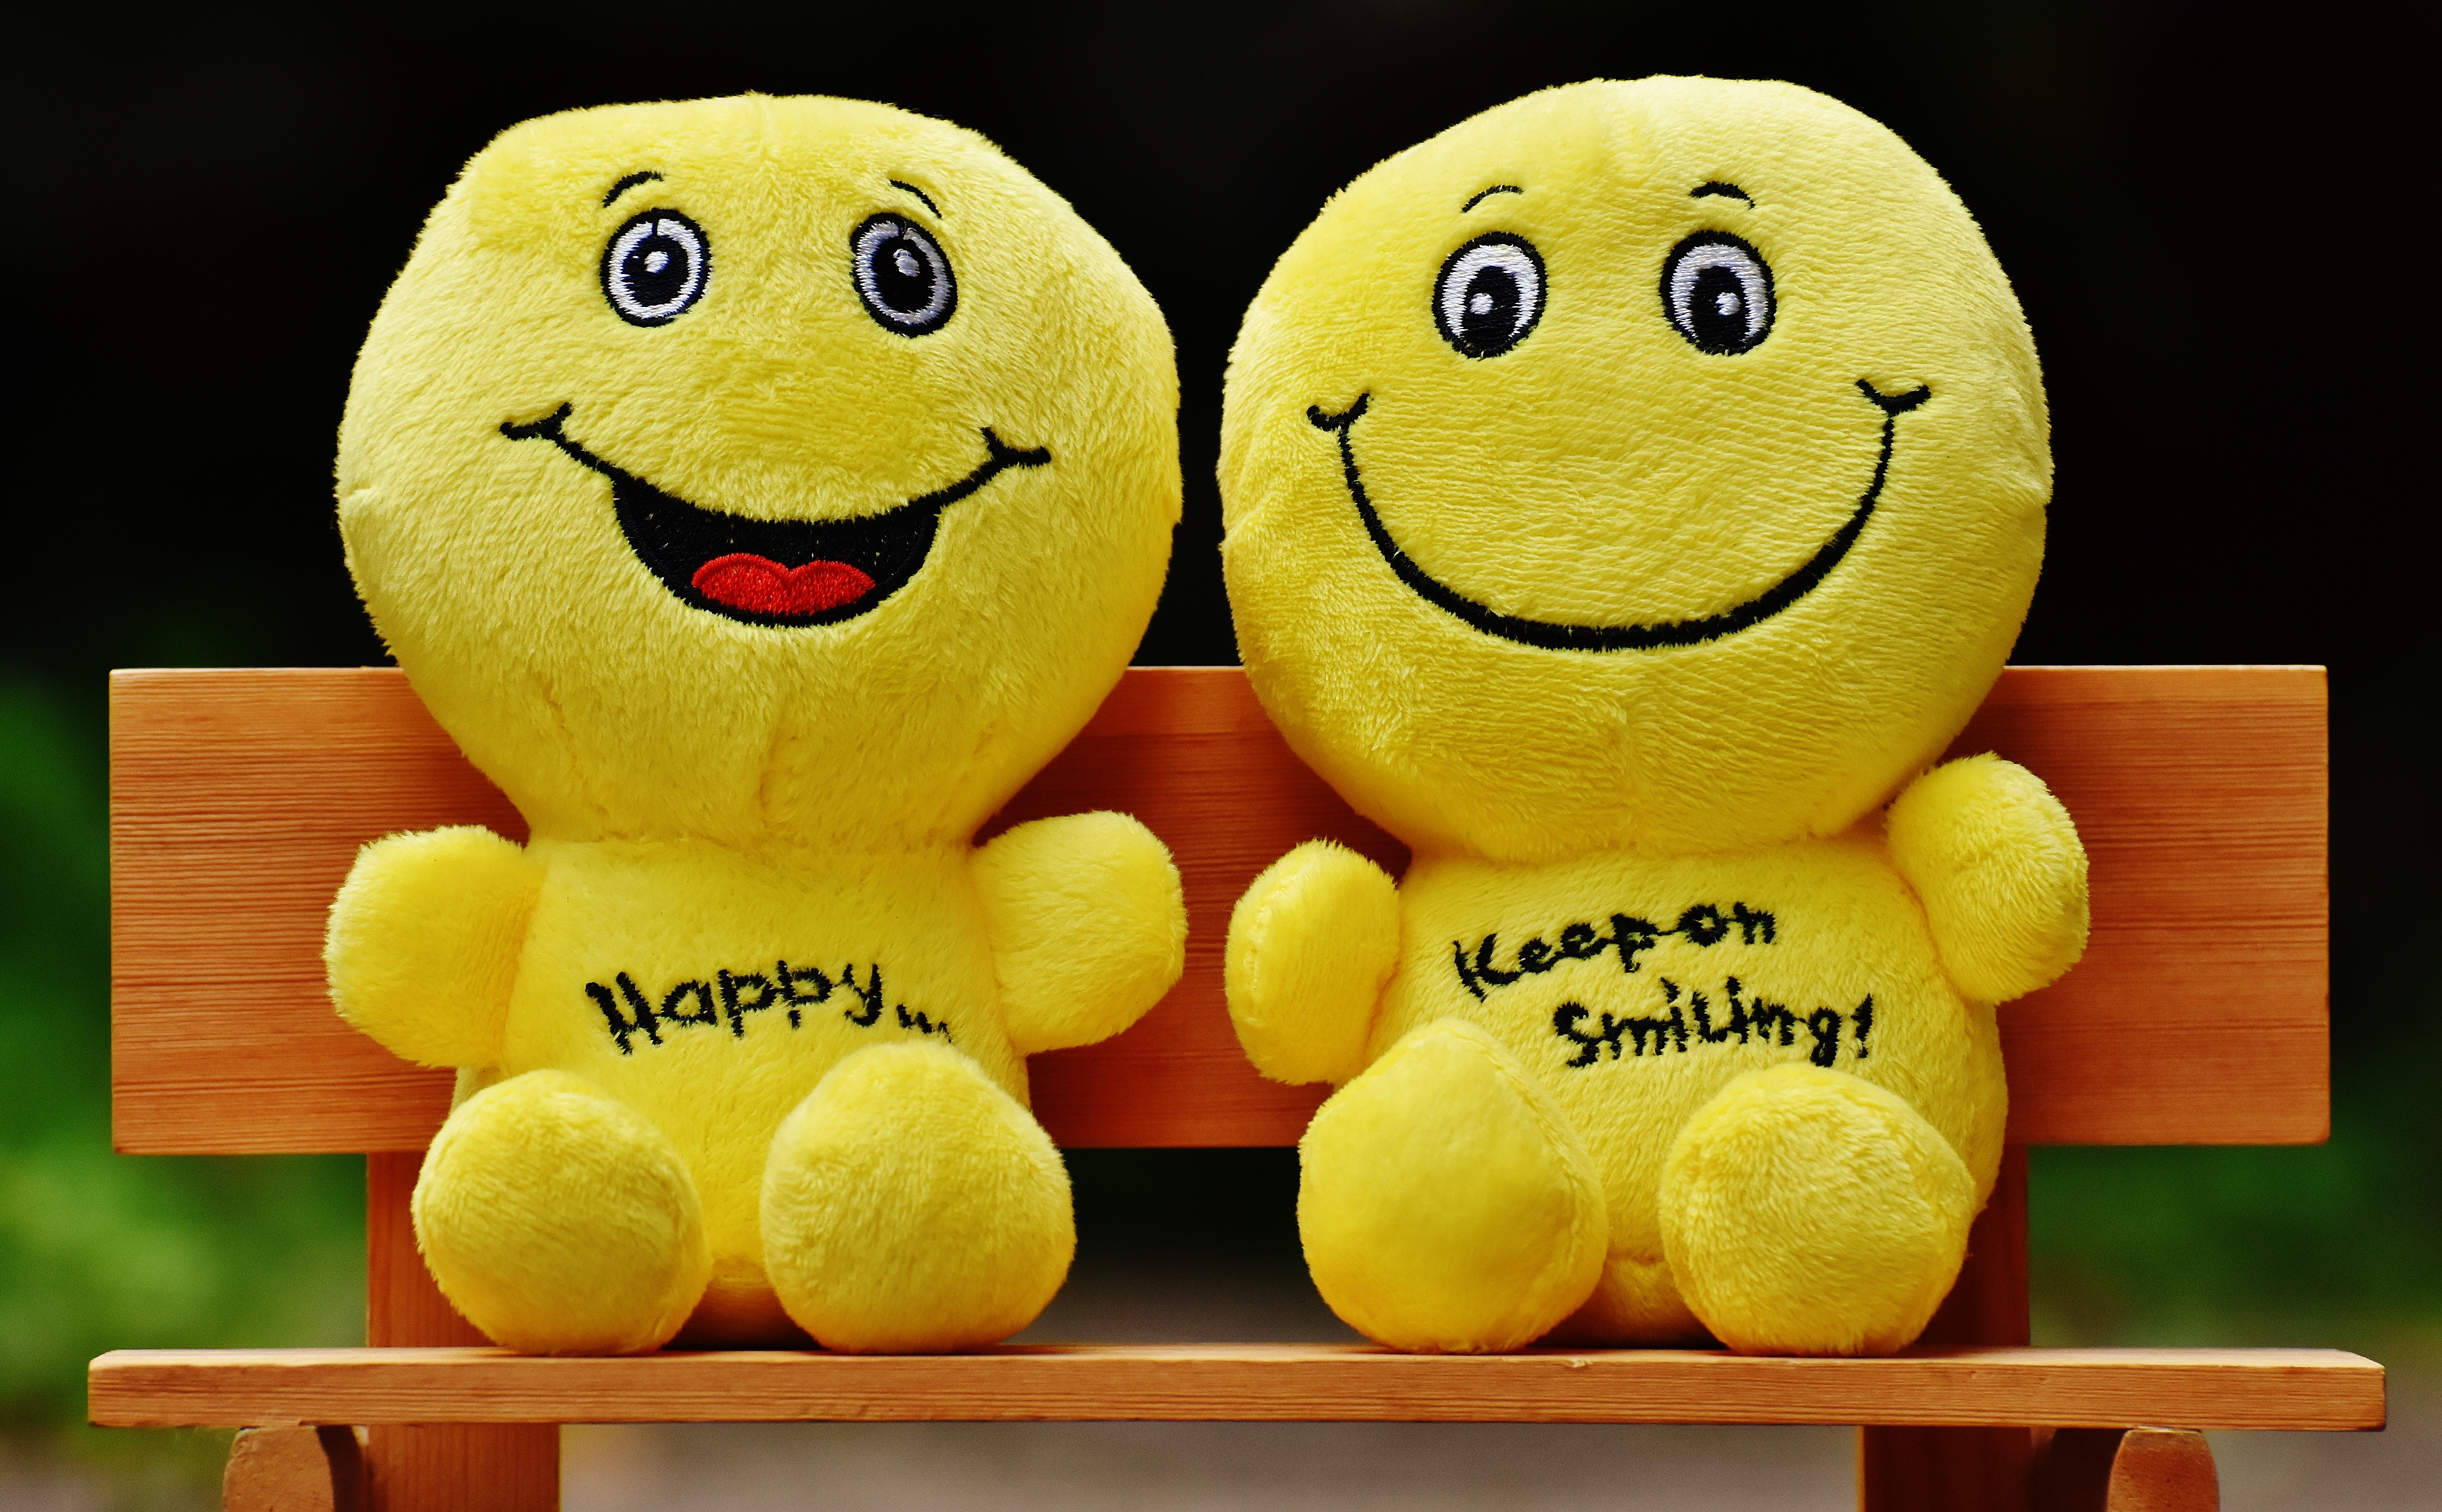 5 Life Skills That Bring More Happiness – Simple Tips That Create A Happy Feeling